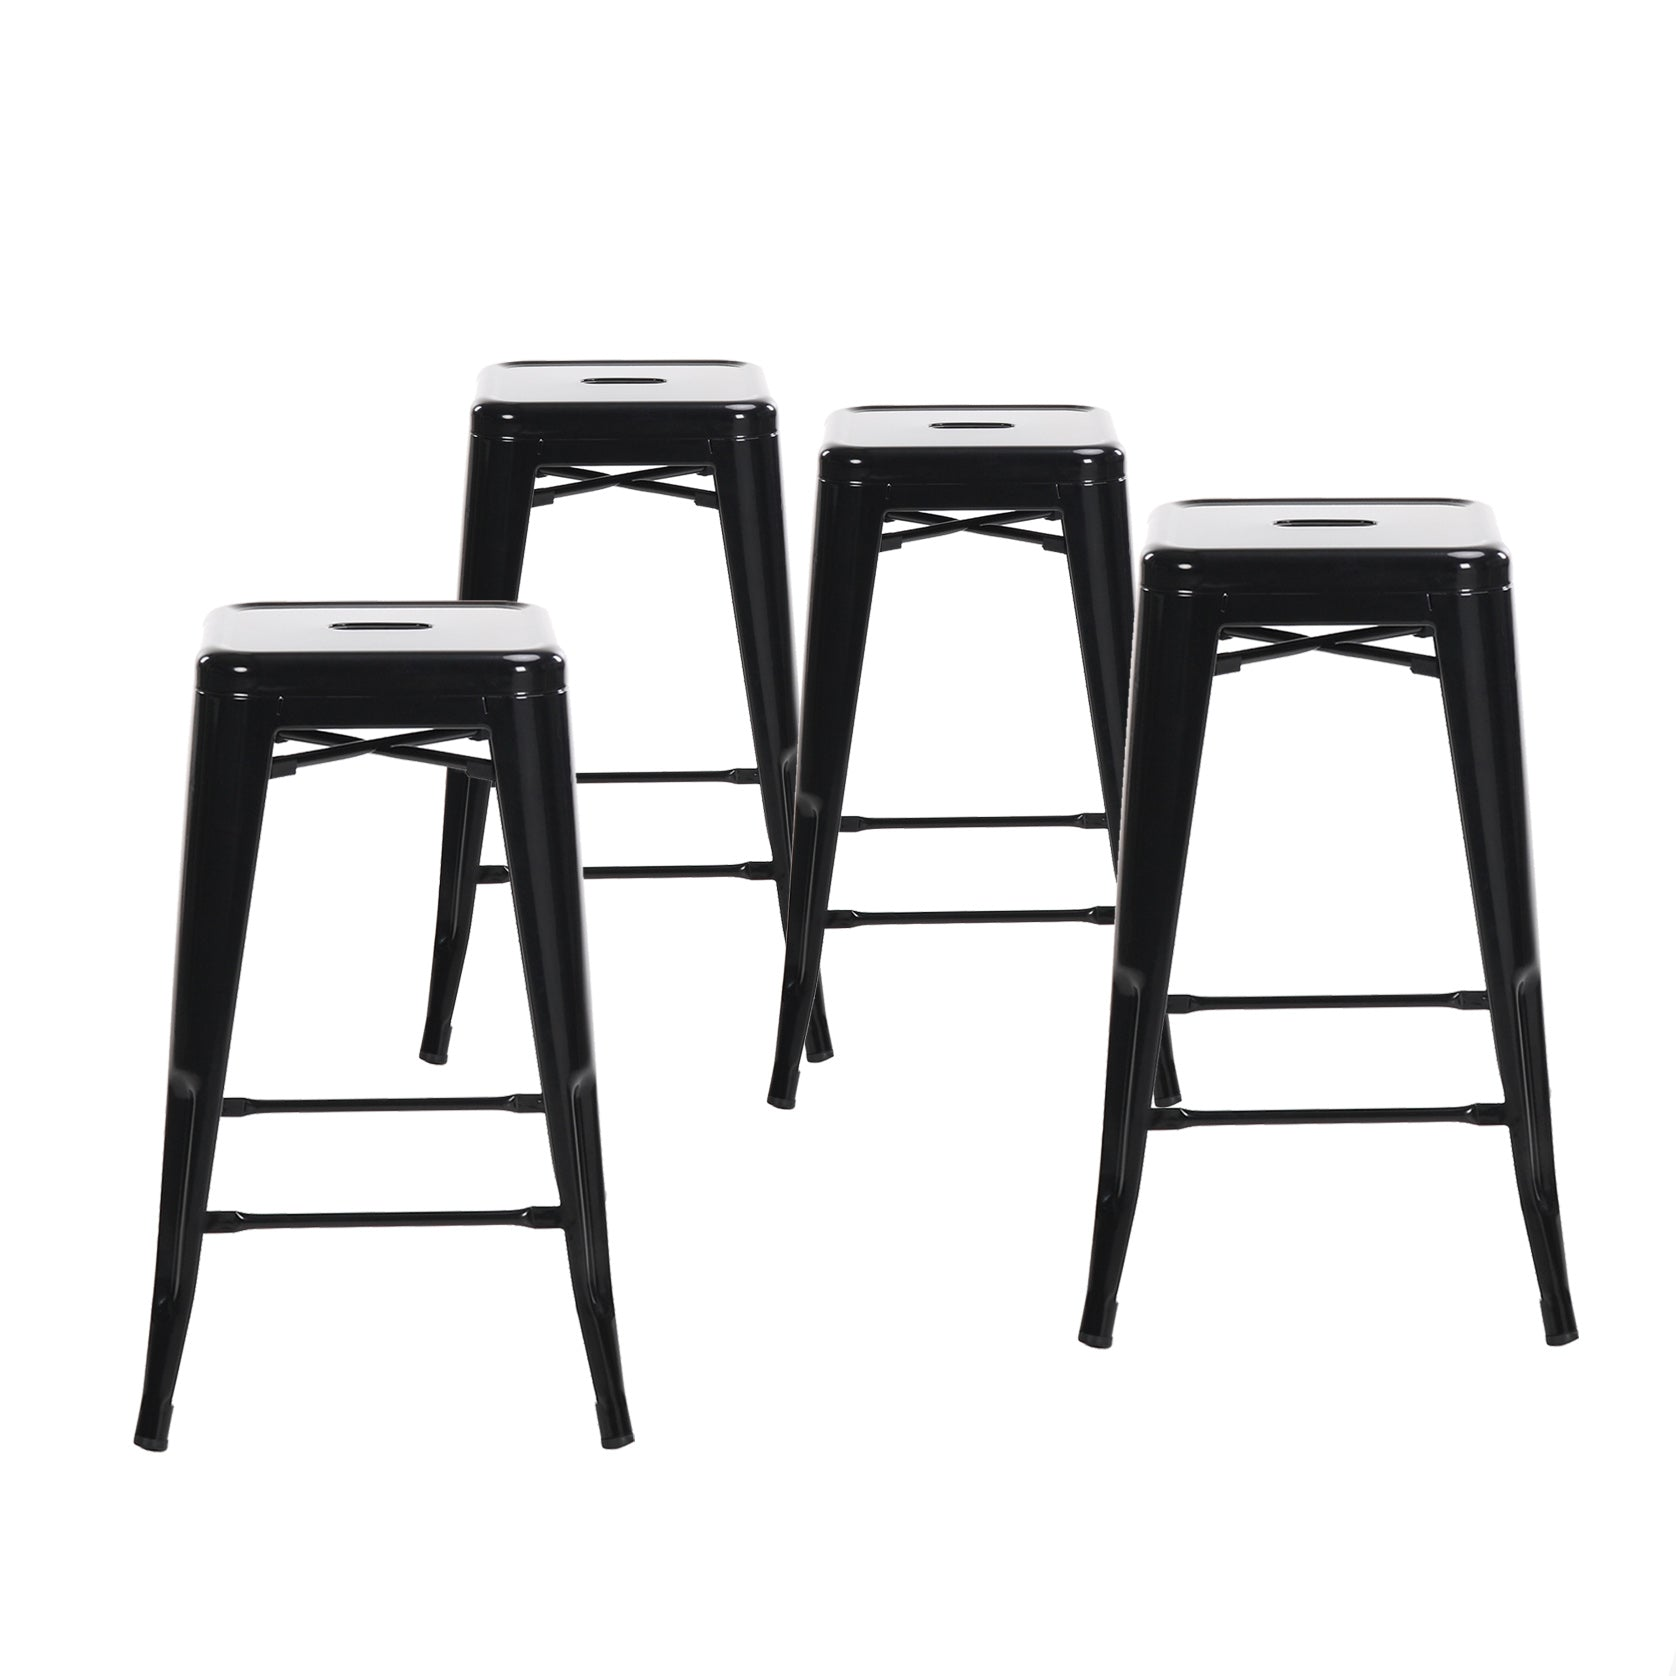 "Buschman Metal Bar Stools 24"" Counter Height, Indoor/Outdoor and Stackable, Set of 4 (Black)"